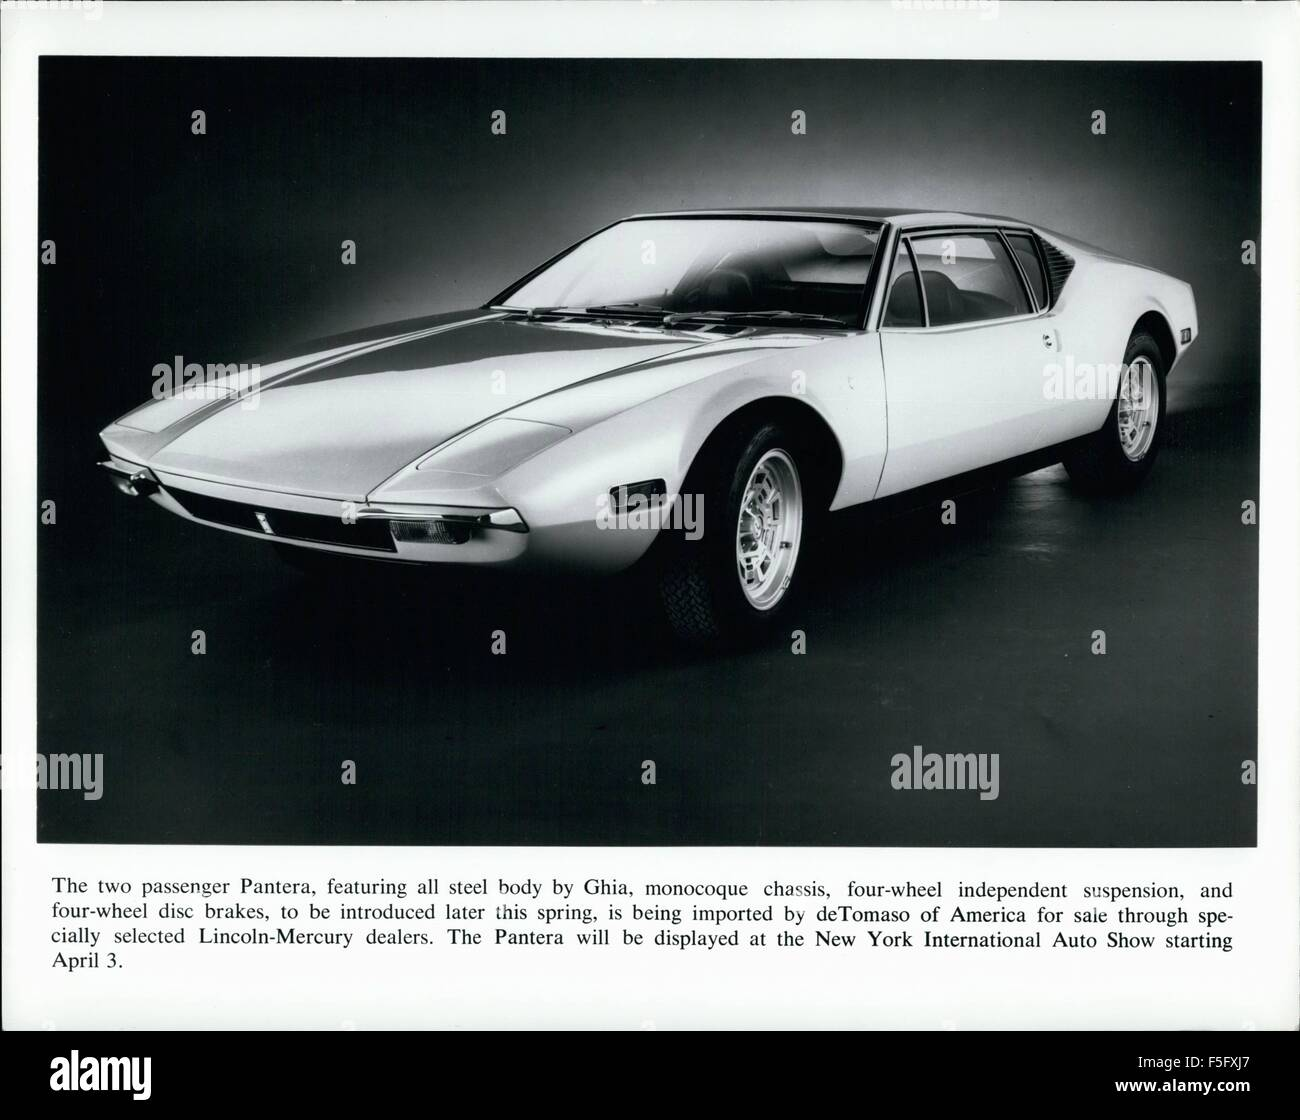 1972 - The two passenger Pantera, featuring all steel body by Ghia, monocoque chassis, four-wheel independent suspension, - Stock Image